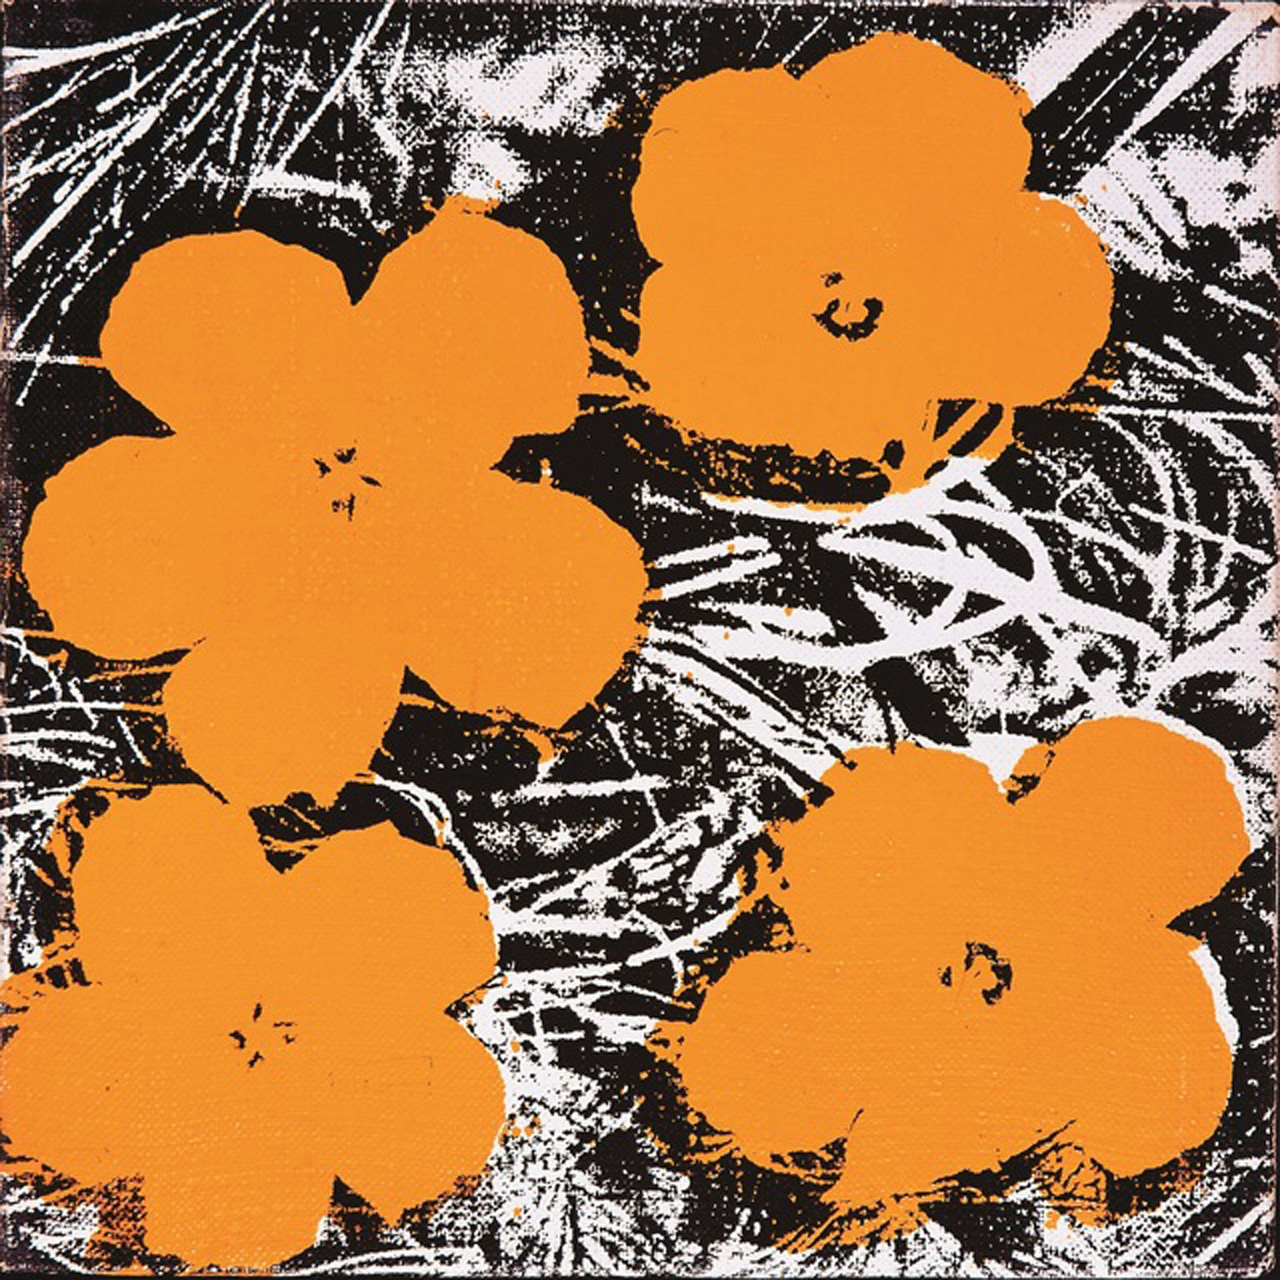 """Andy Warhol, """"Flowers"""" (1965), acrylic paint and silkscreen ink on canvas, 8 by 8 in. (© The Andy Warhol Foundation for the Visual Arts, Inc. / ADAGP, Paris 2015)"""